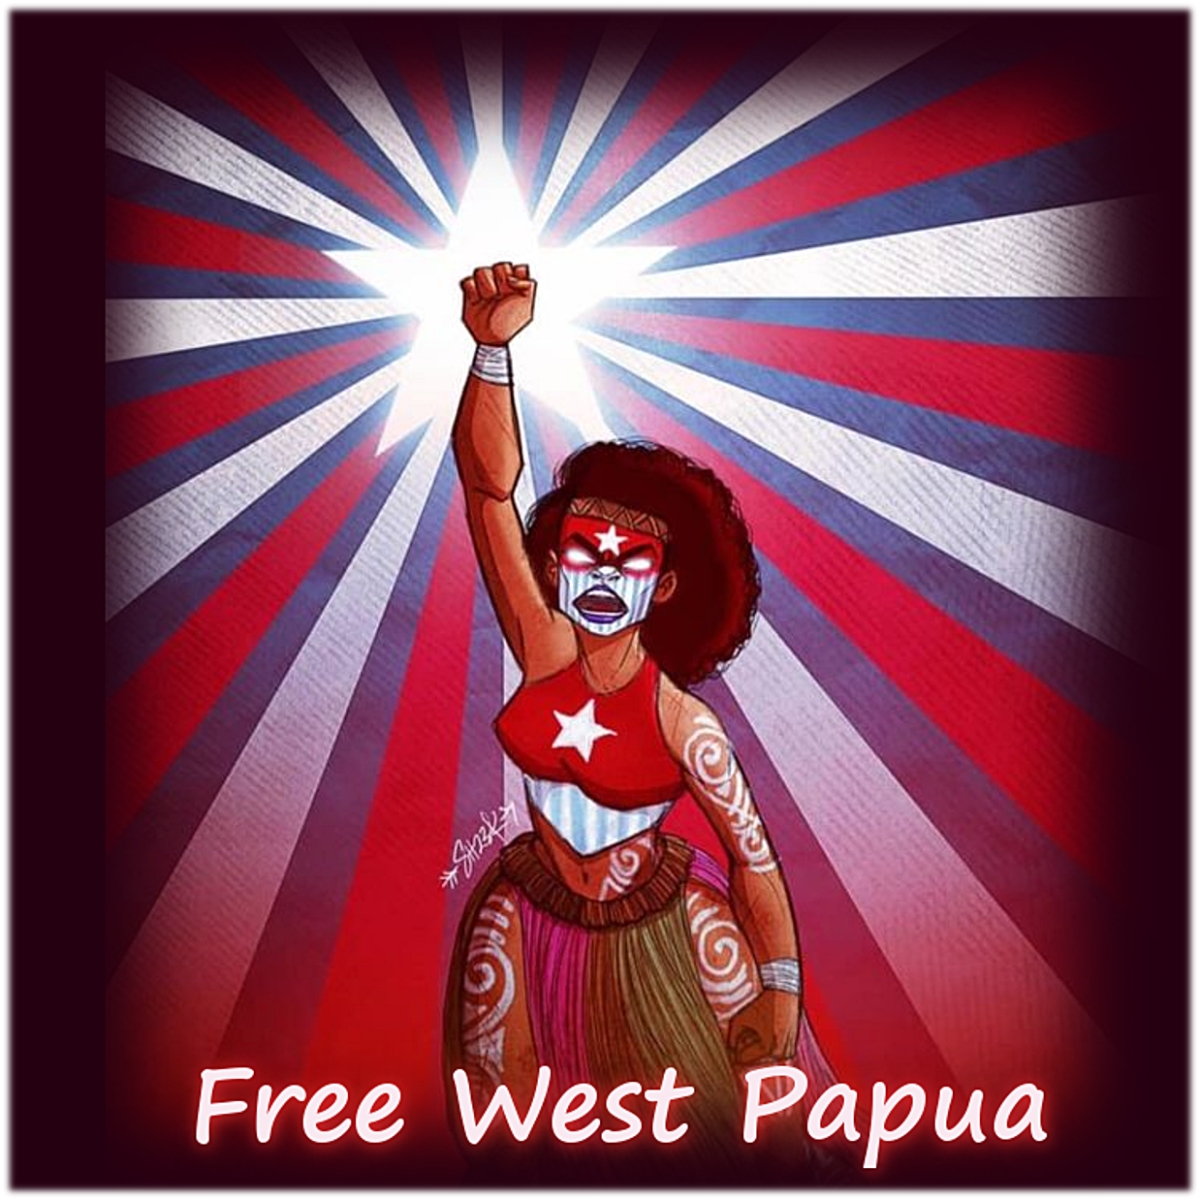 Global Action: Free West Papua! 5th to 7th Sept